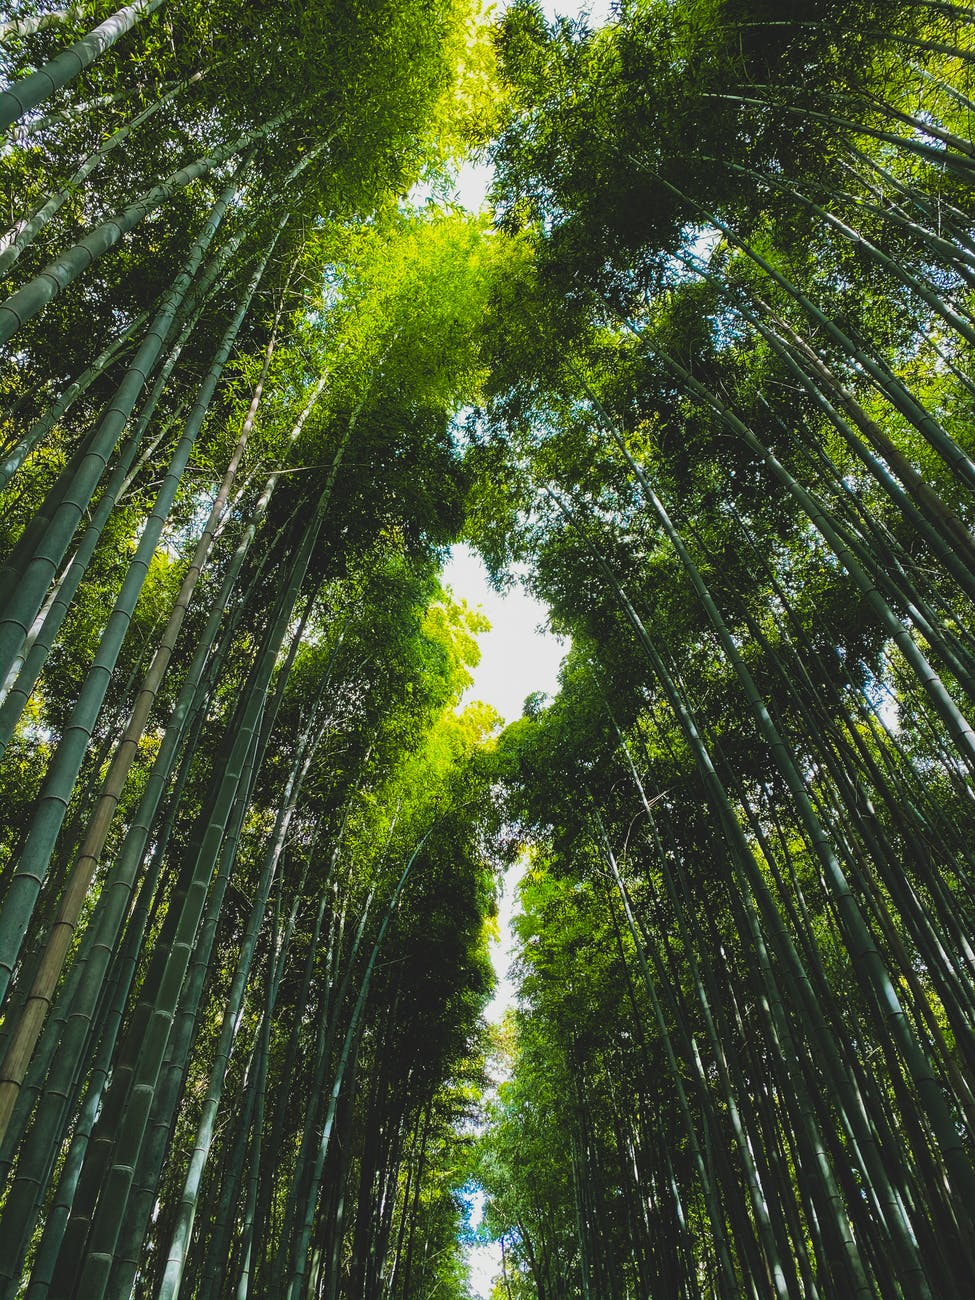 bamboo forest with row of trees on sunny day